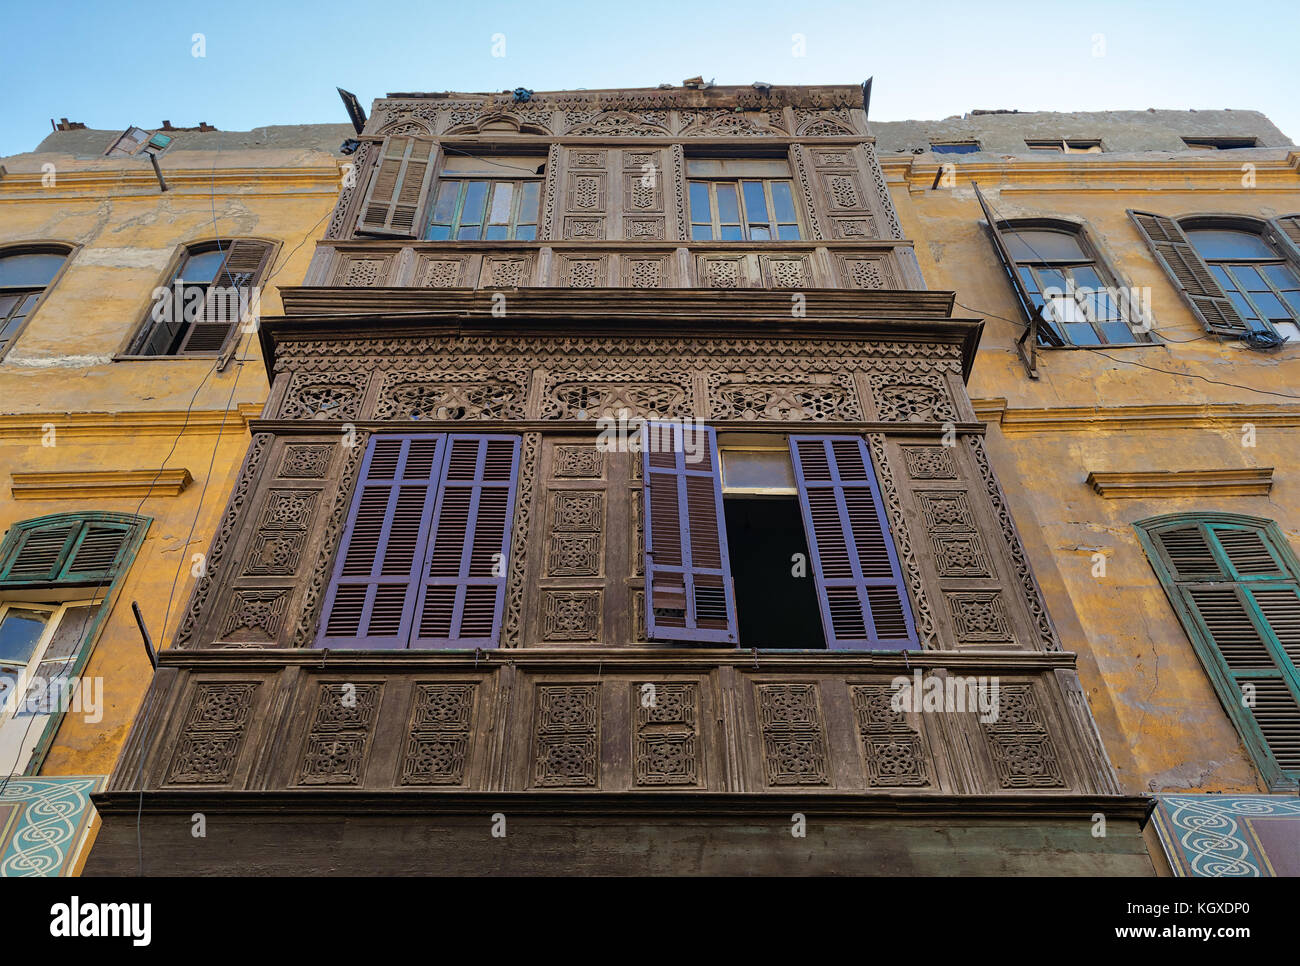 Facade of an old residential building with wooden ornate engraved wall, yellow painted wall, and violet painted - Stock Image